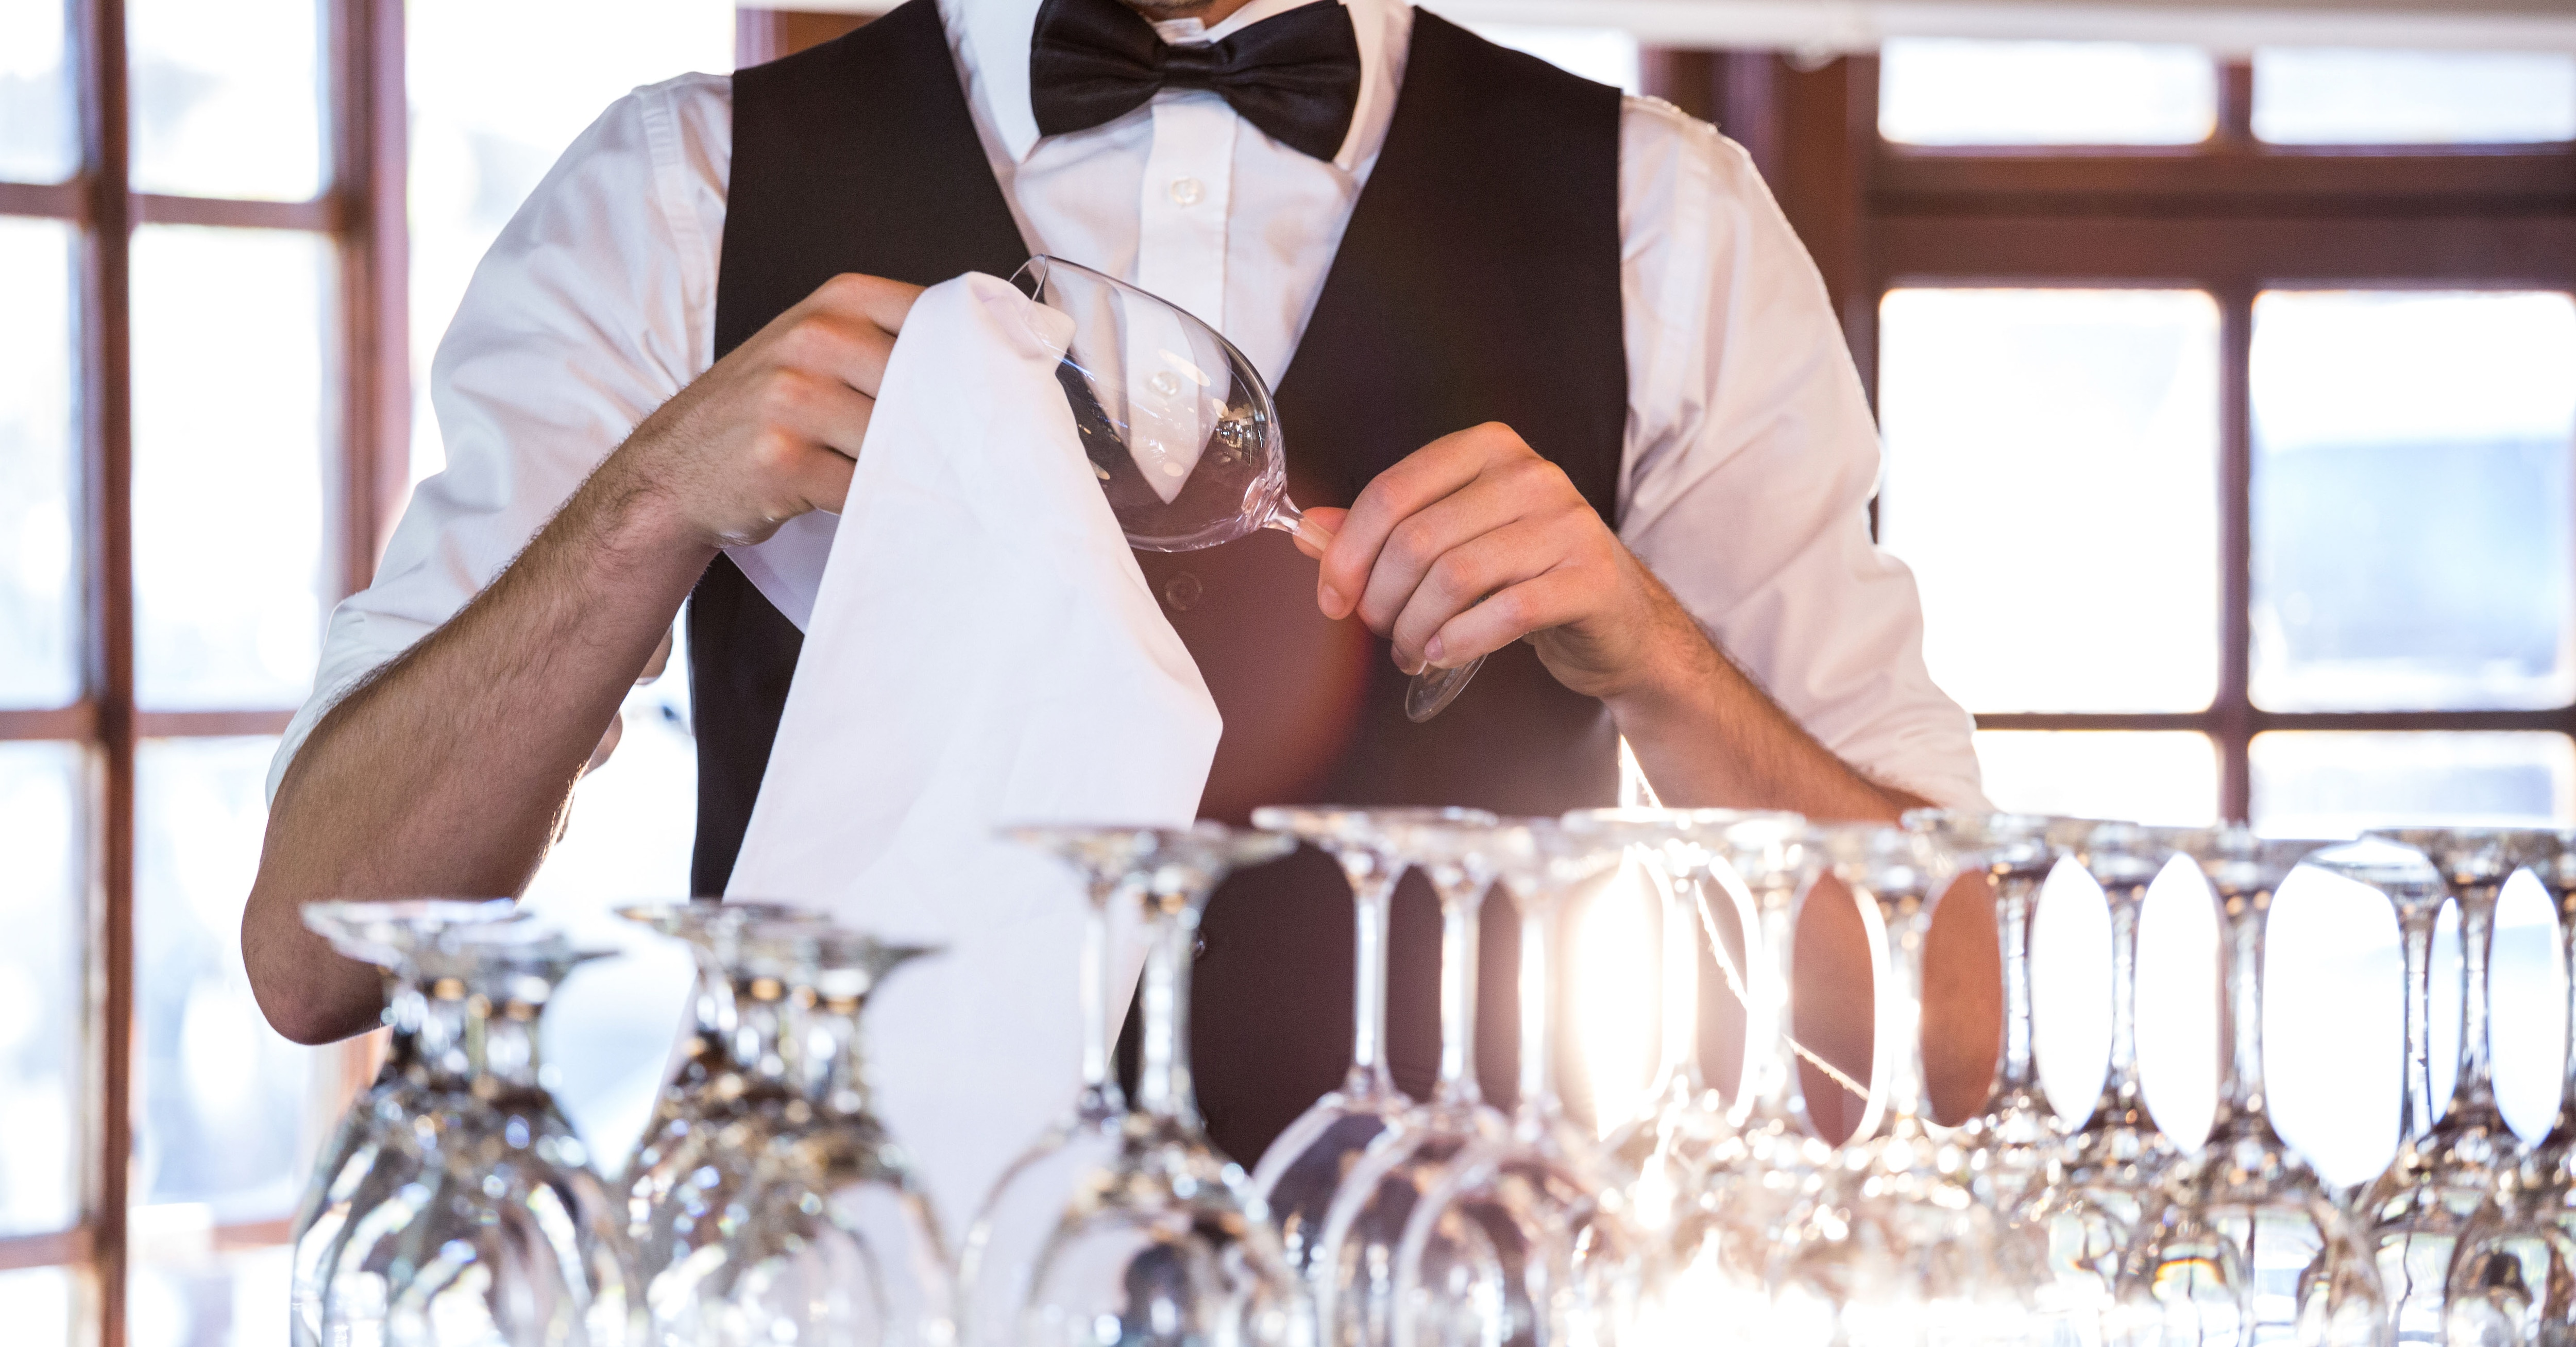 Restaurant Bartender Drying Wine Glasses